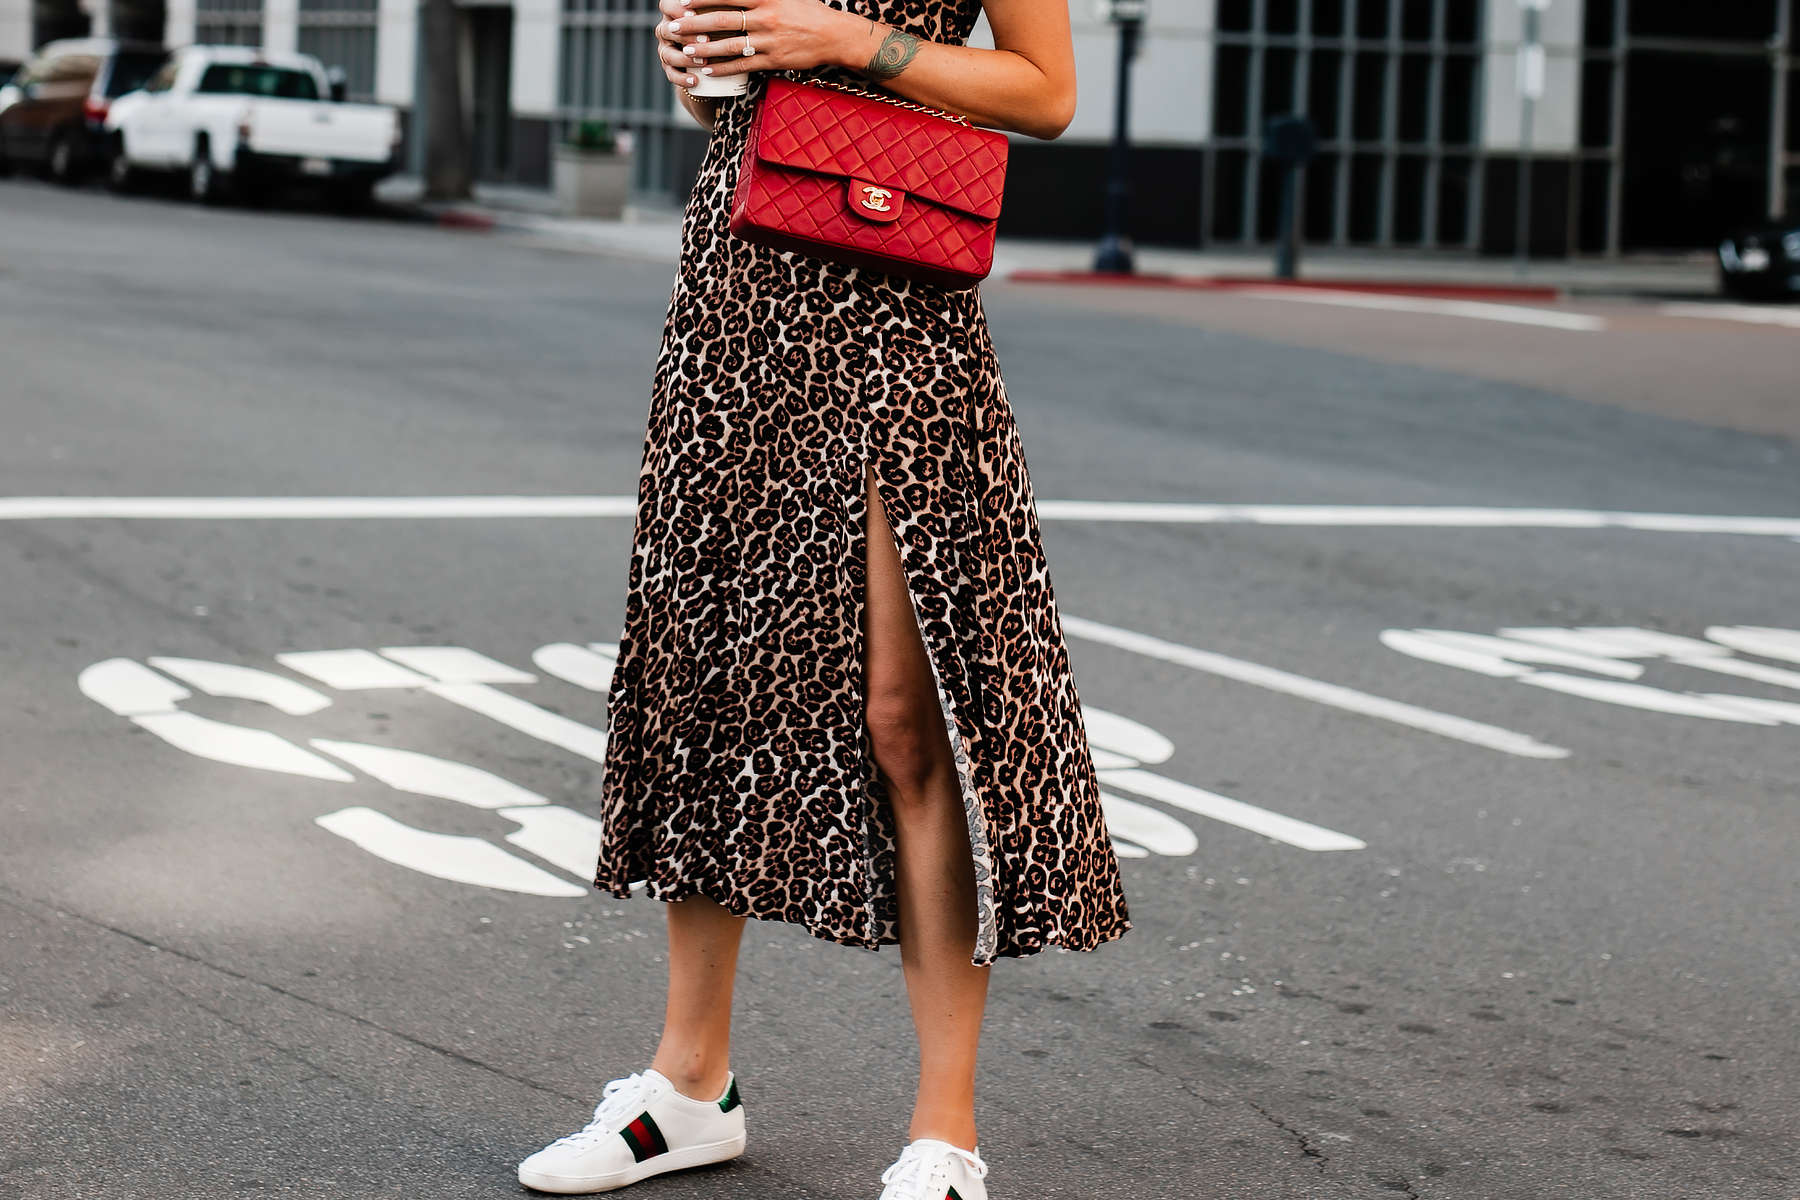 Woman Wearing Red Chanel Handbag Leopard Maxi Dress Gucci Ace Embroidered Sneakers Fashion Jackson San Diego Fashion Blogger Street Style